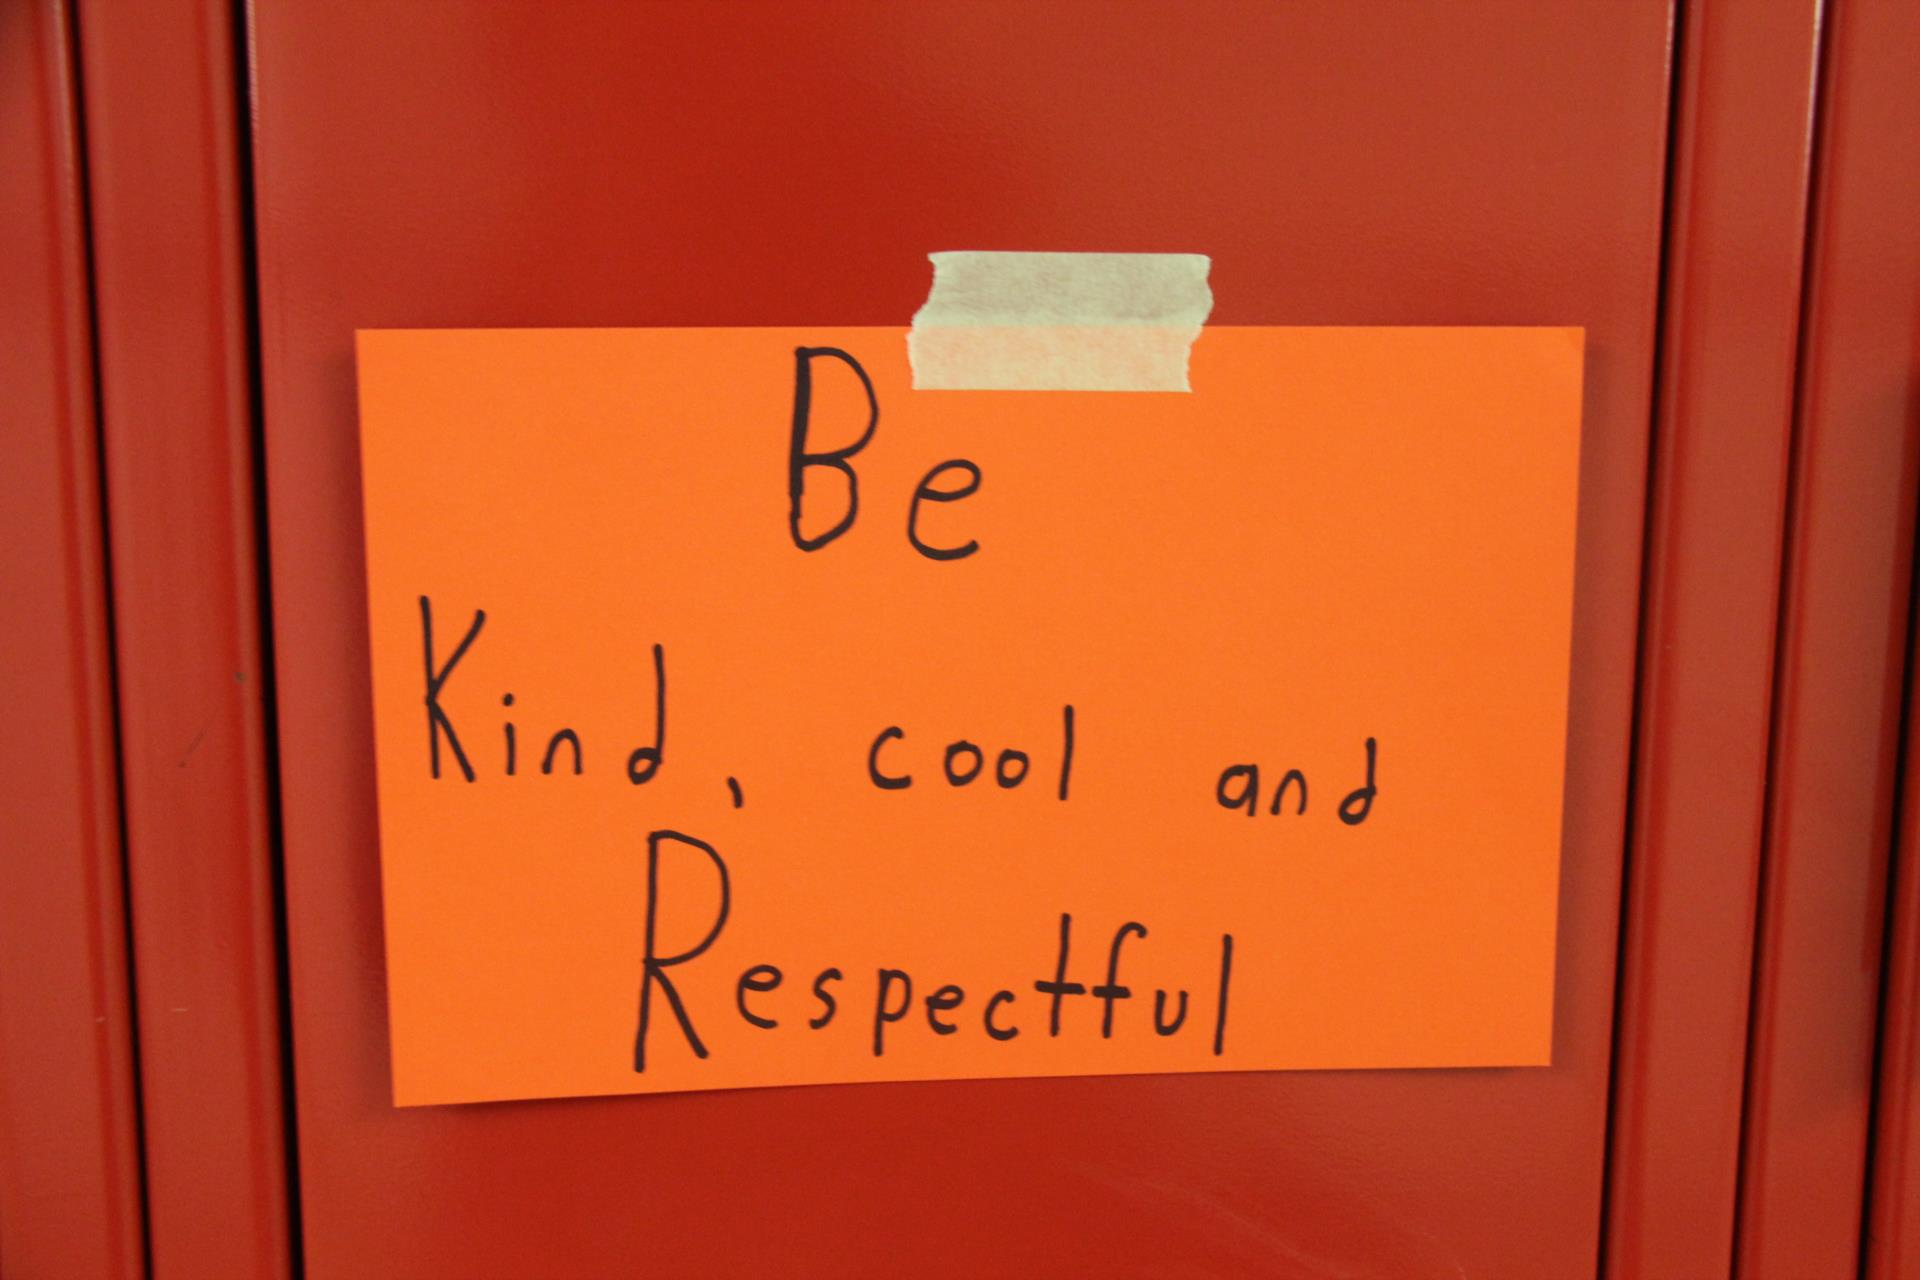 Be kind, cool and respectful